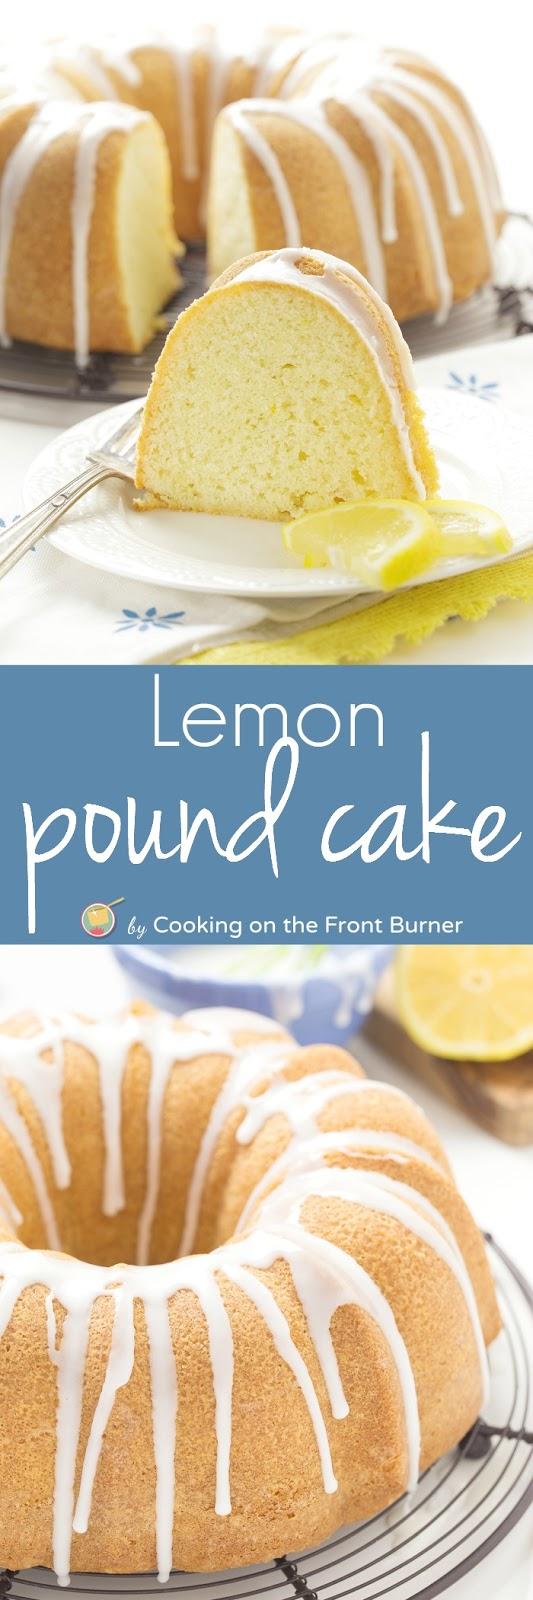 Lemon Pound Cake | Cooking on the Front Burner